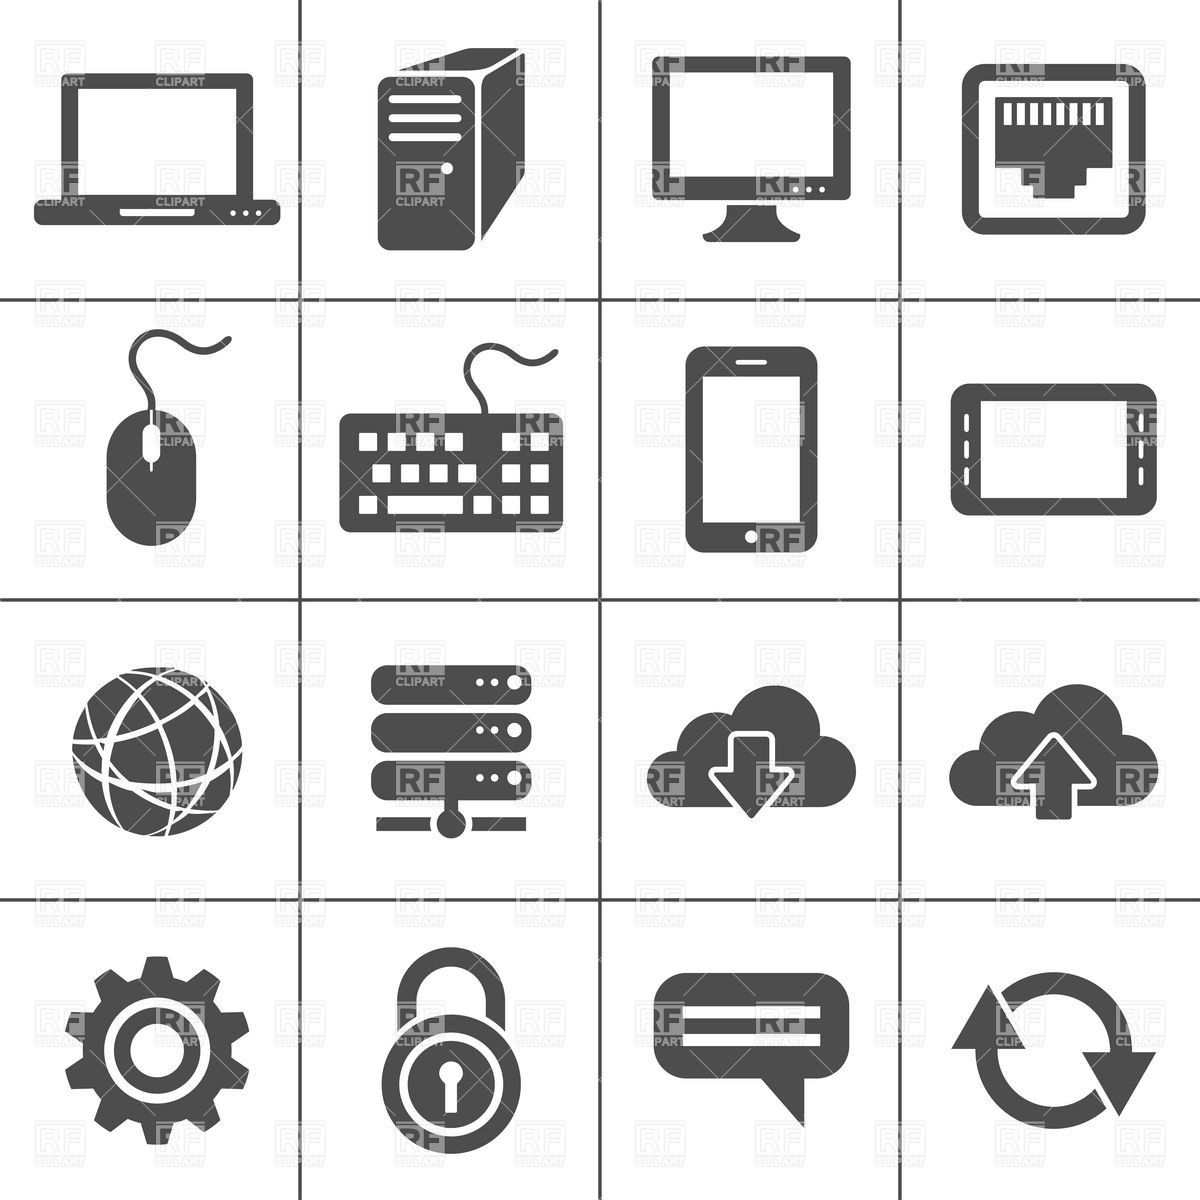 1200x1200 Network And Mobile Devices, Simplus Icons Series Vector Image